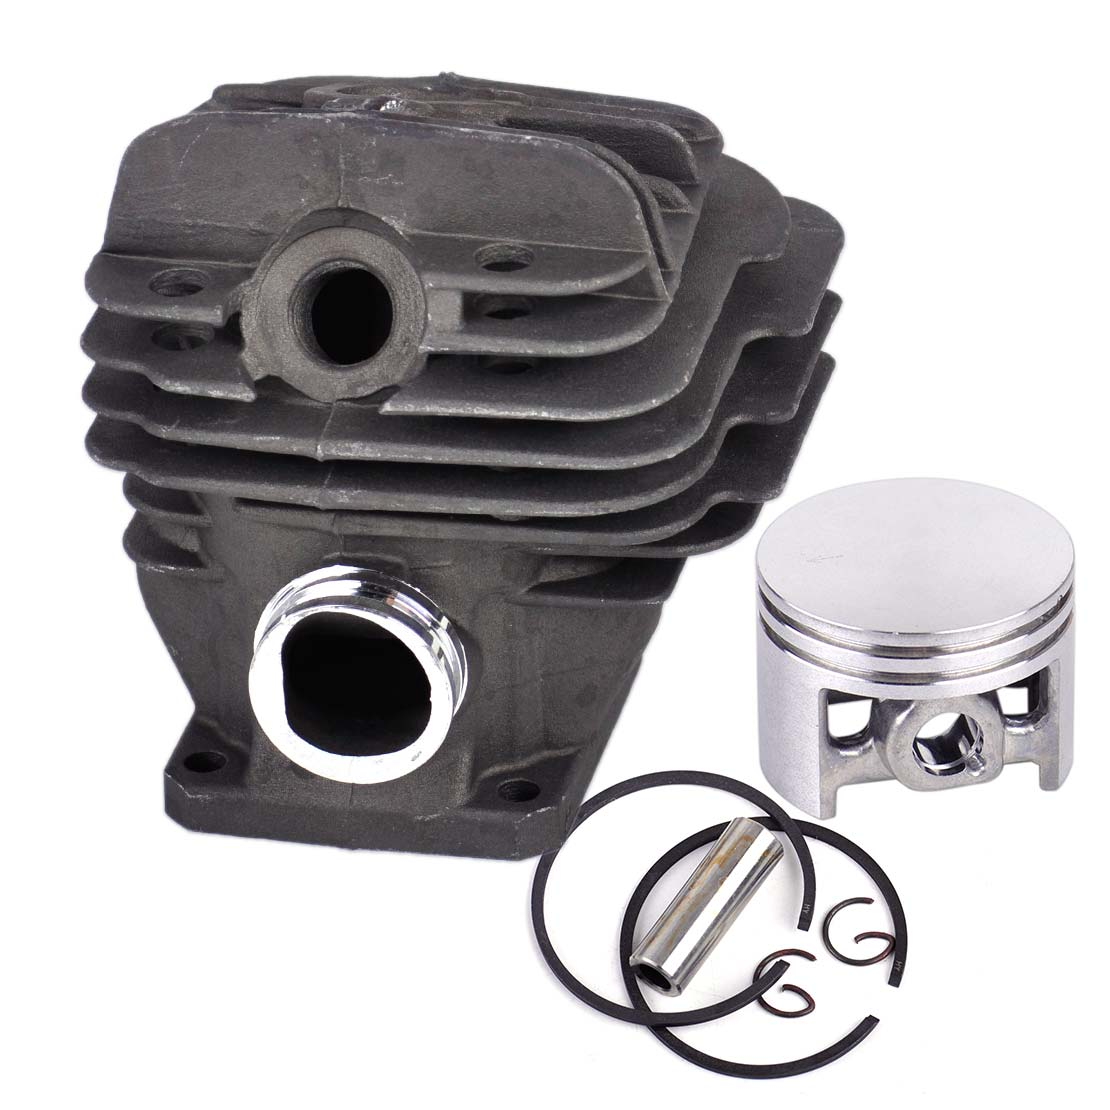 LETAOSK 44MM Cylinder Piston Ring Kit Fit For STIHL 026 MS260 Chainsaw 1121 020 1217Accessories